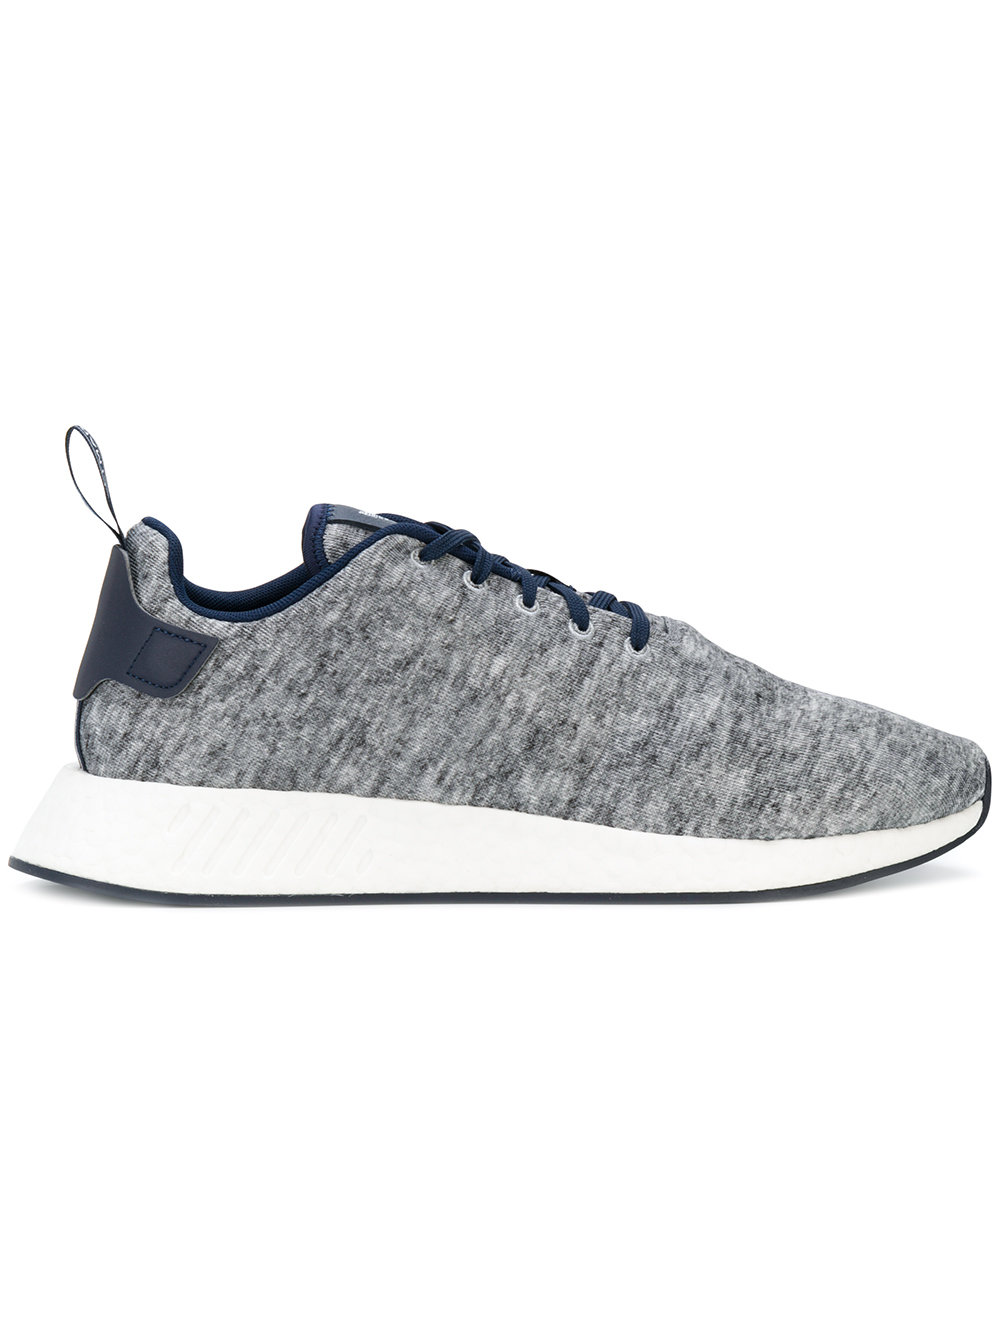 Adidas UA&SONS NMD R2 sneakers